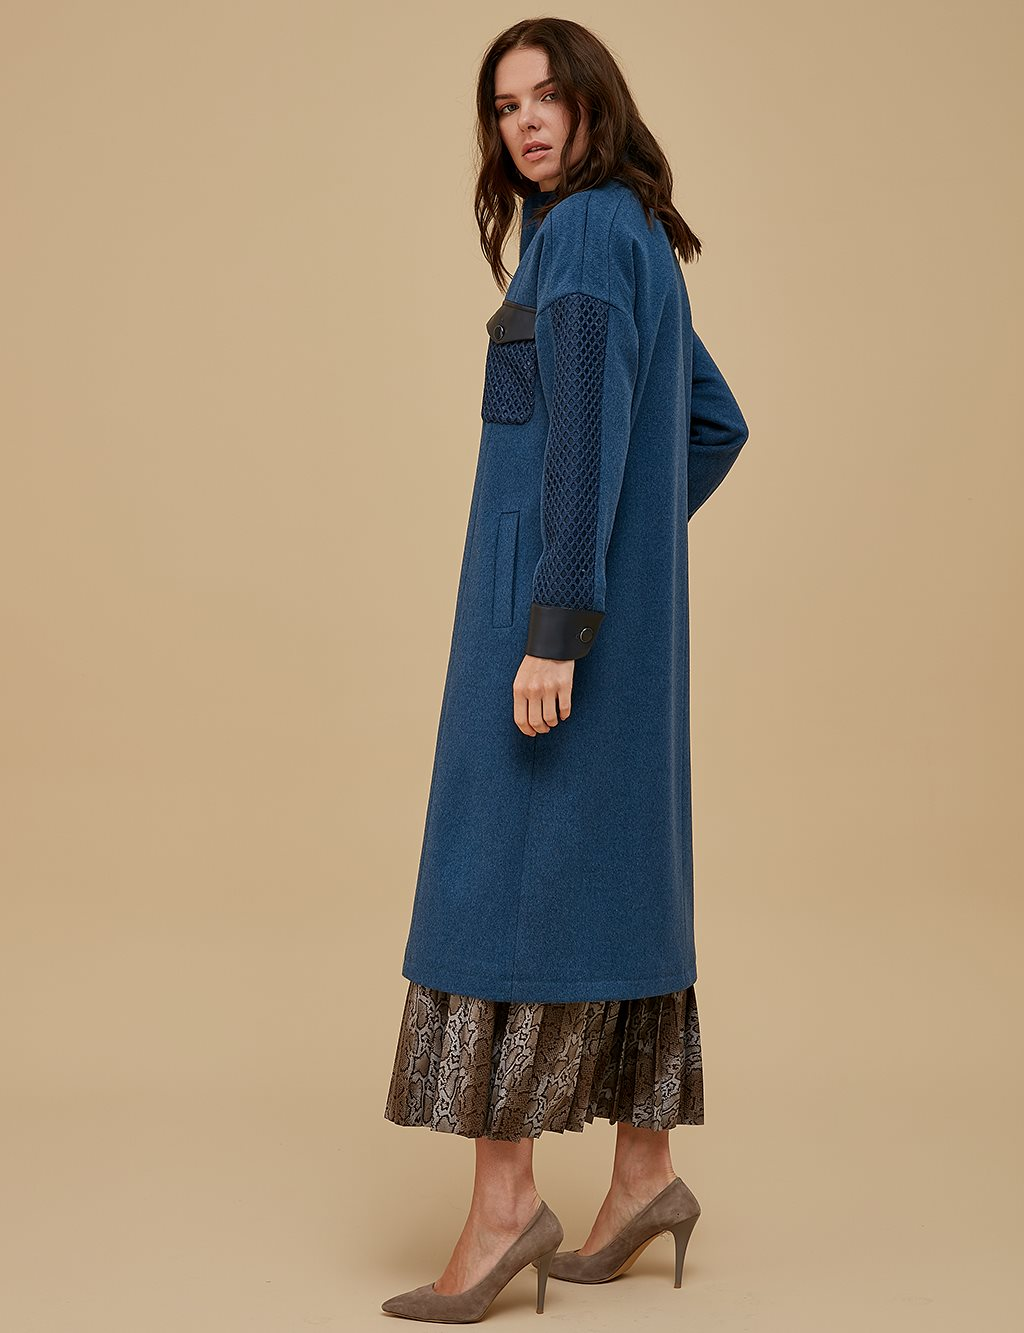 Mesh Pocket Coat A9 17053 Navy